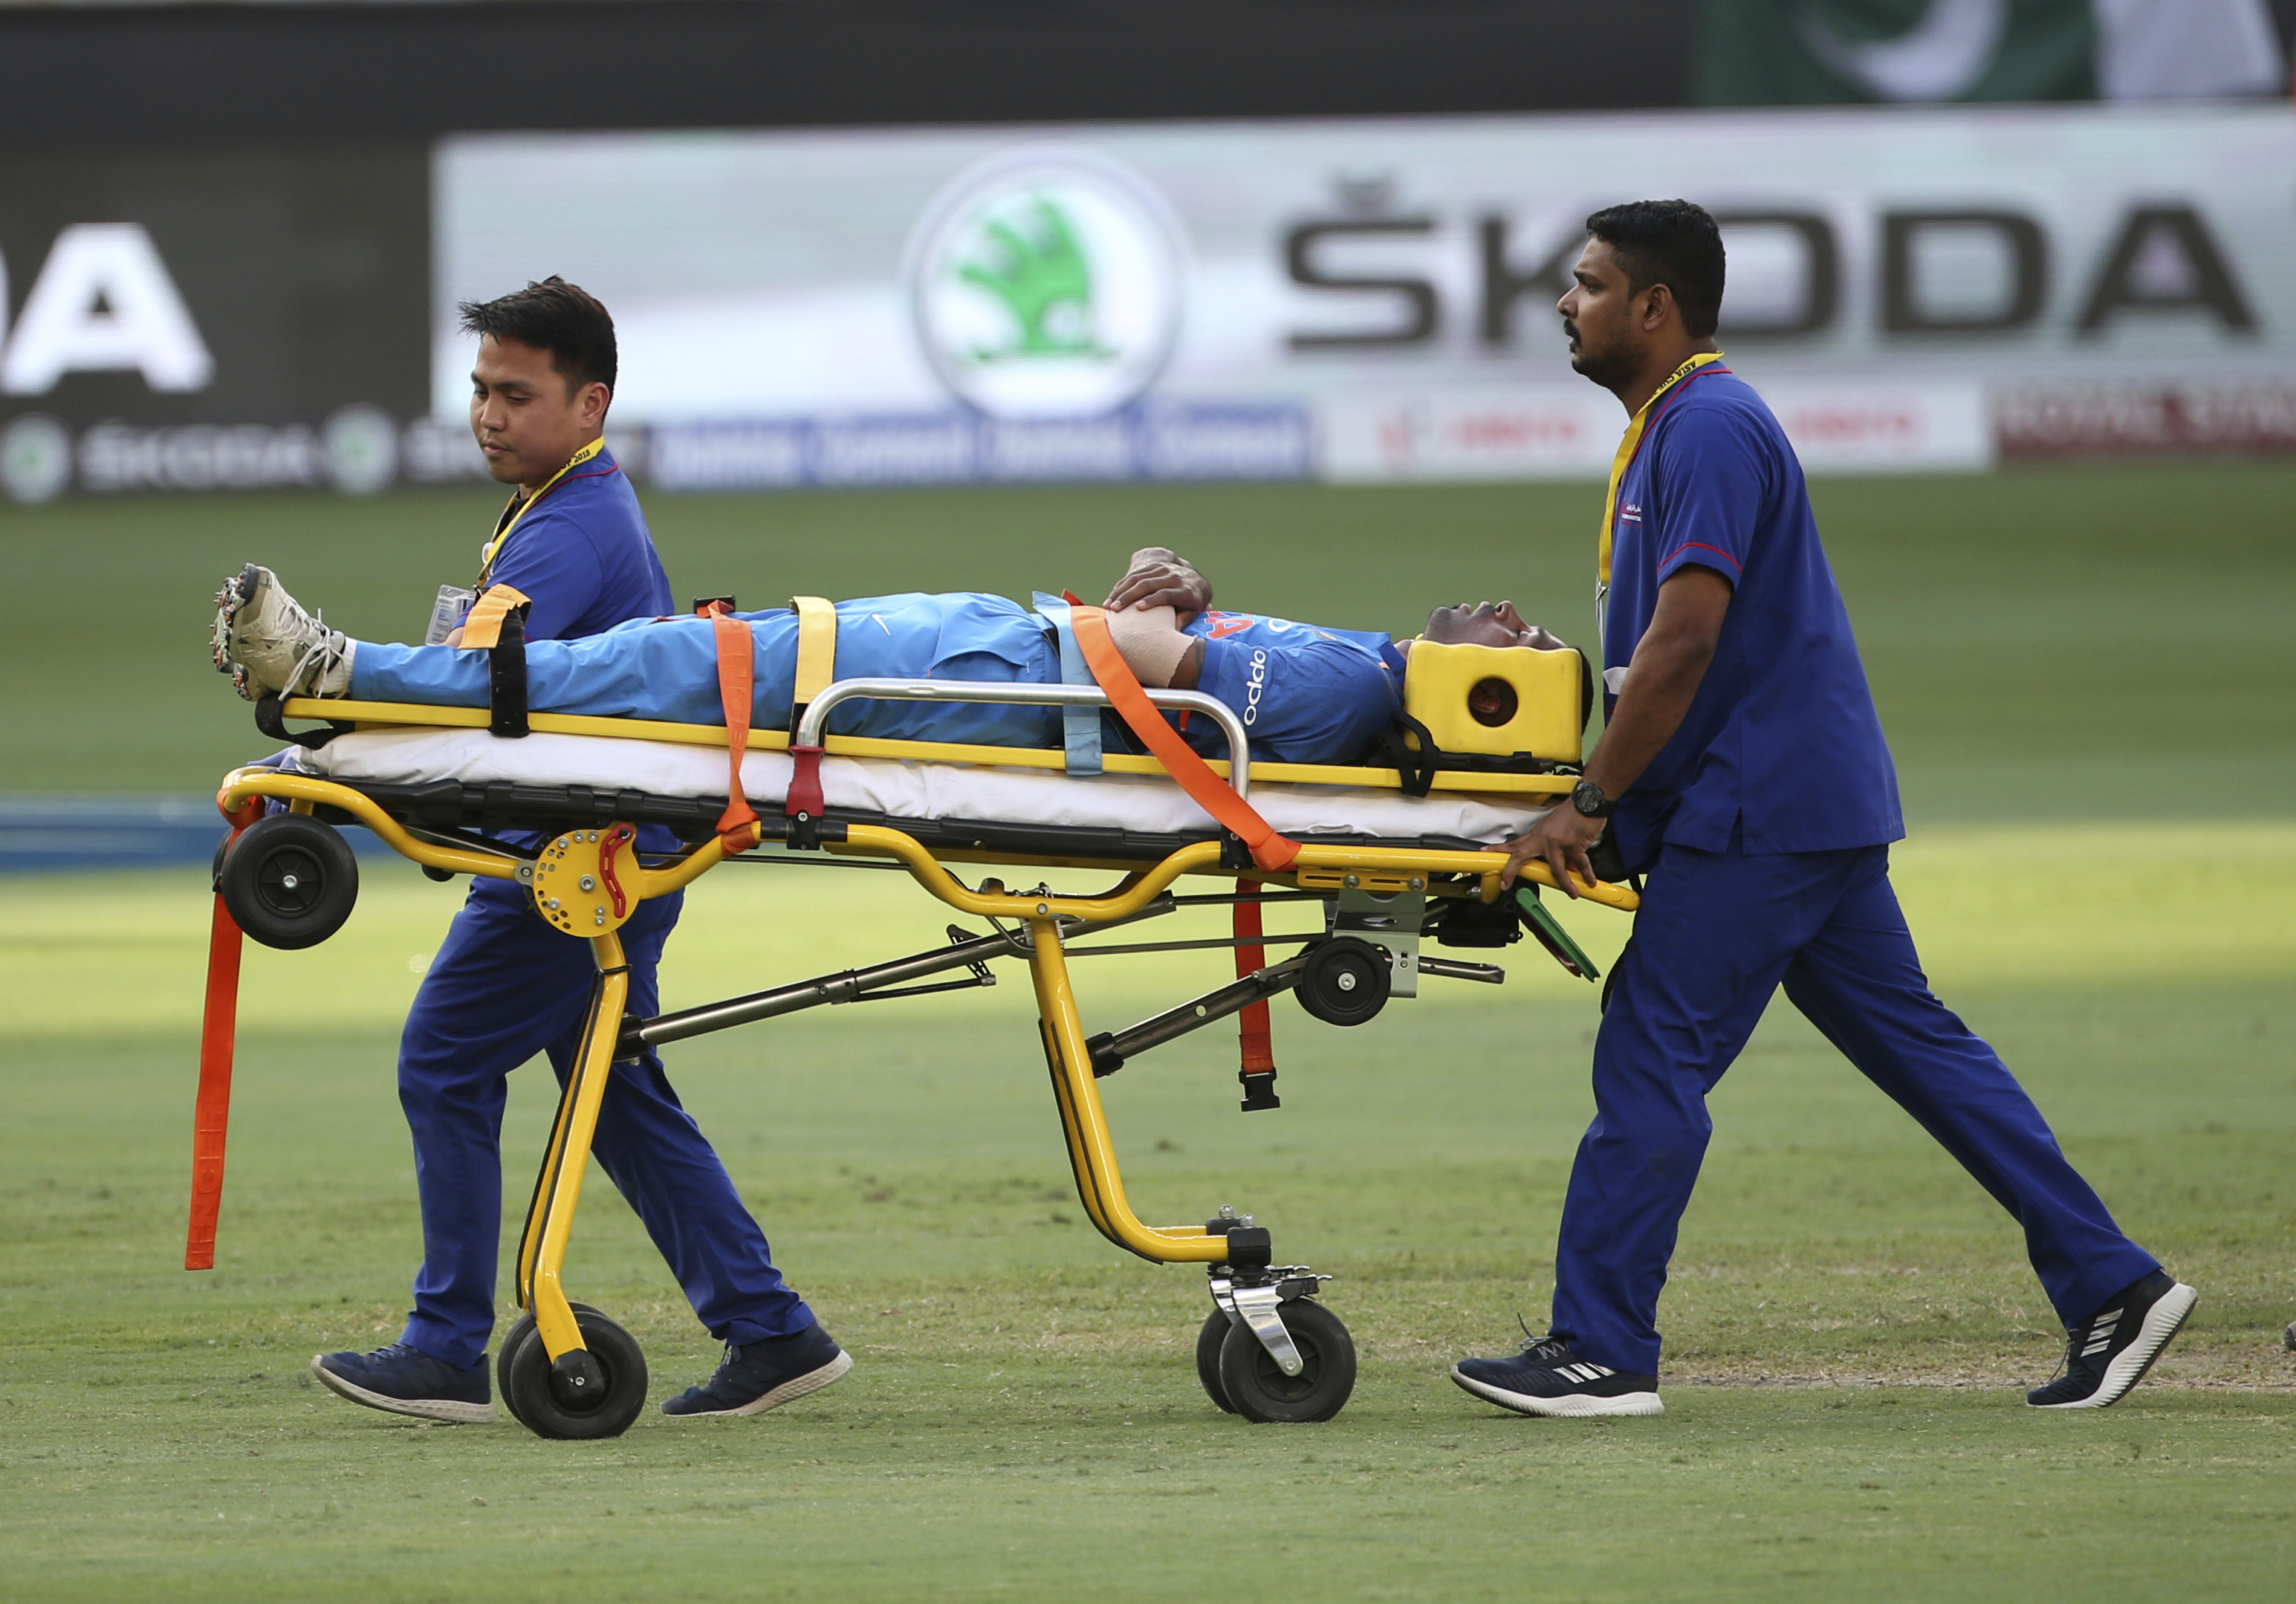 India's Hardik Pandya is taken out of the field on a stretcher after he fell after bowling a delivery during the one day international cricket match of Asia Cup between India and Pakistan in Dubai - AP